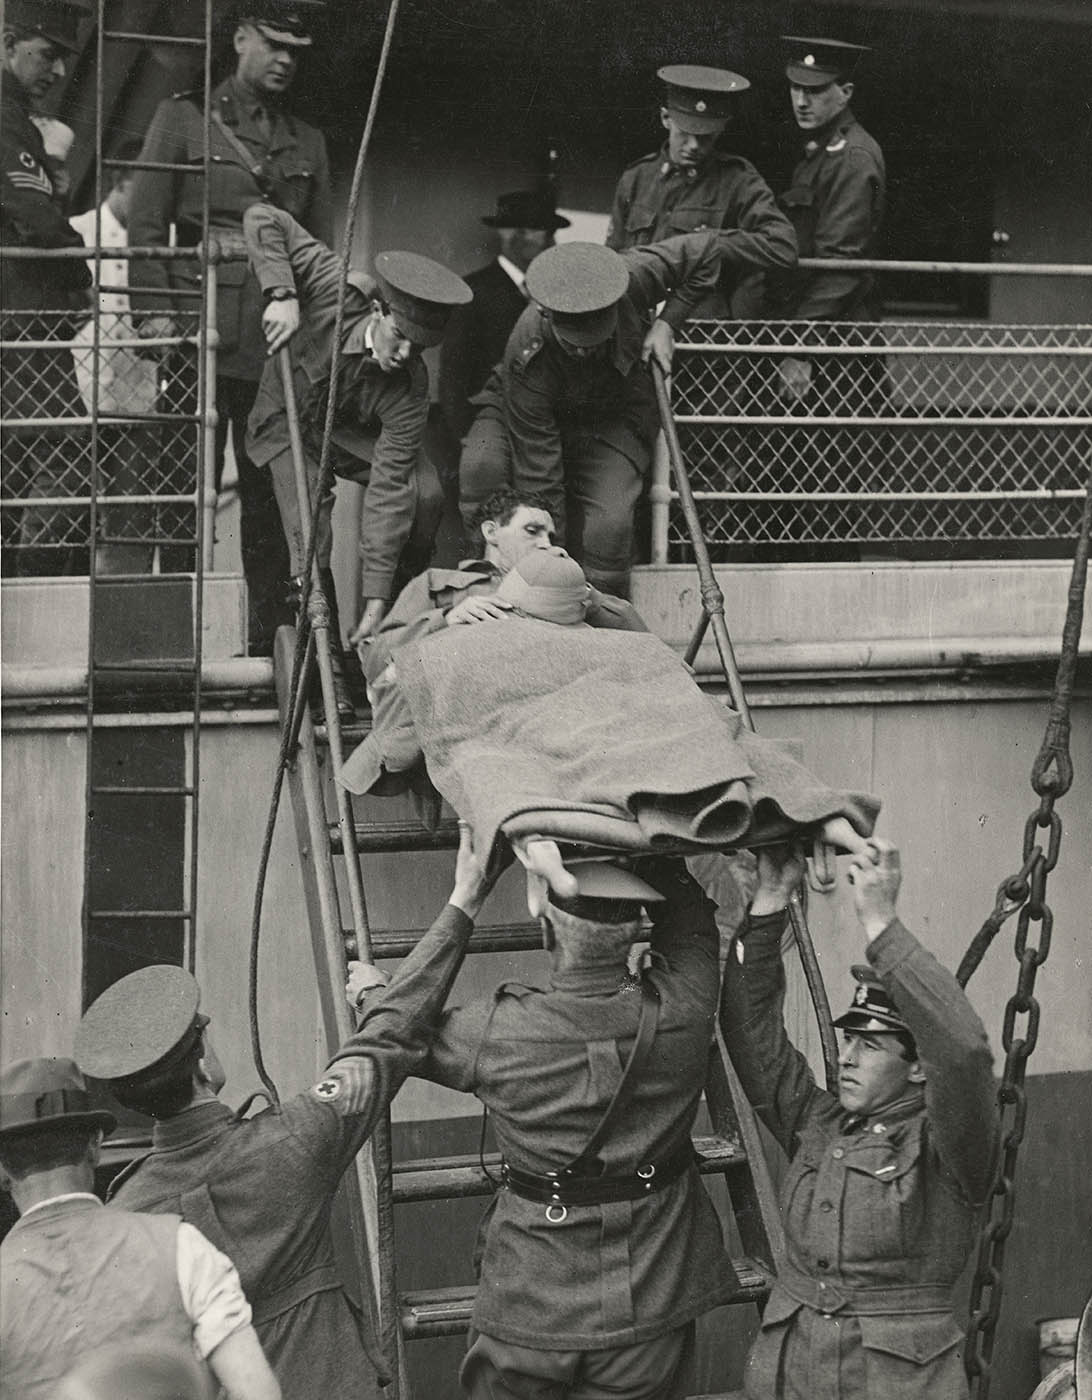 A soldier on a stretcher is being lifted by other soldiers disembarking from a ship. - click to view larger image